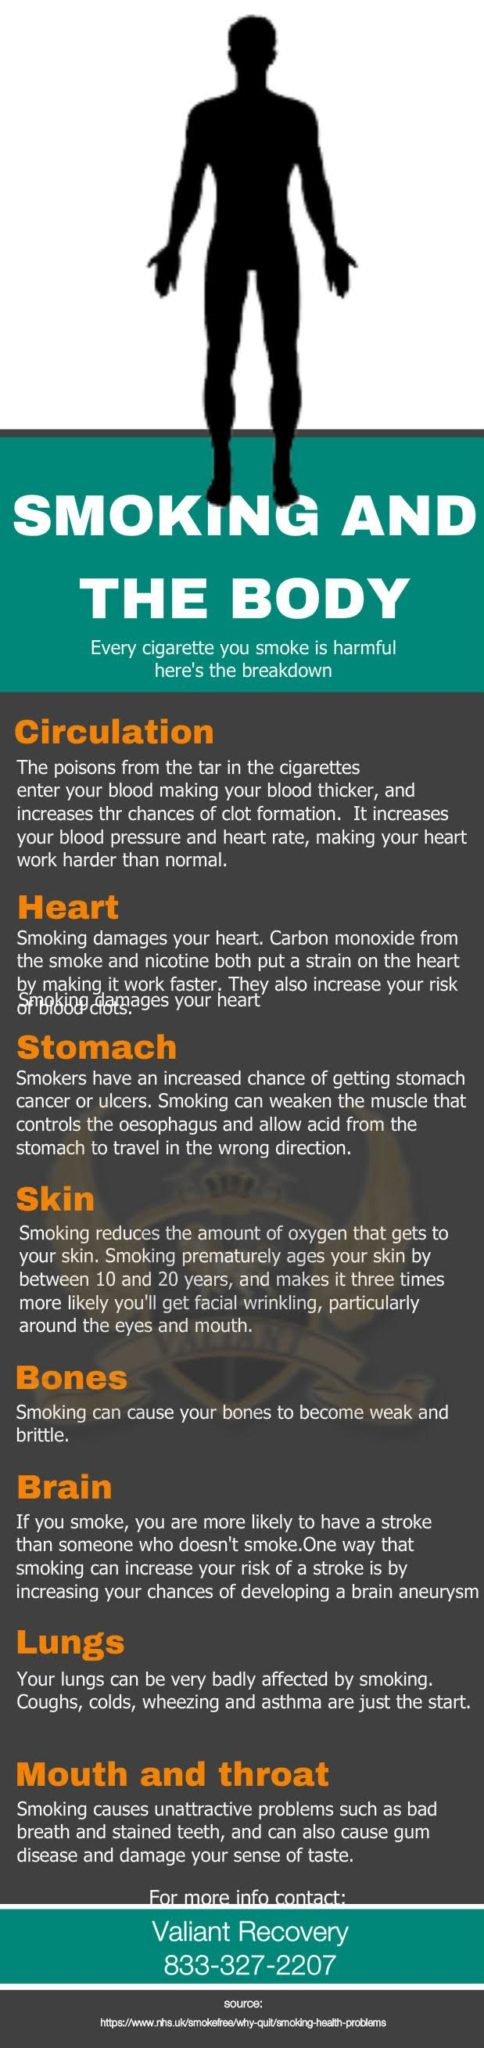 Smoking and The Effects Body - Infographic